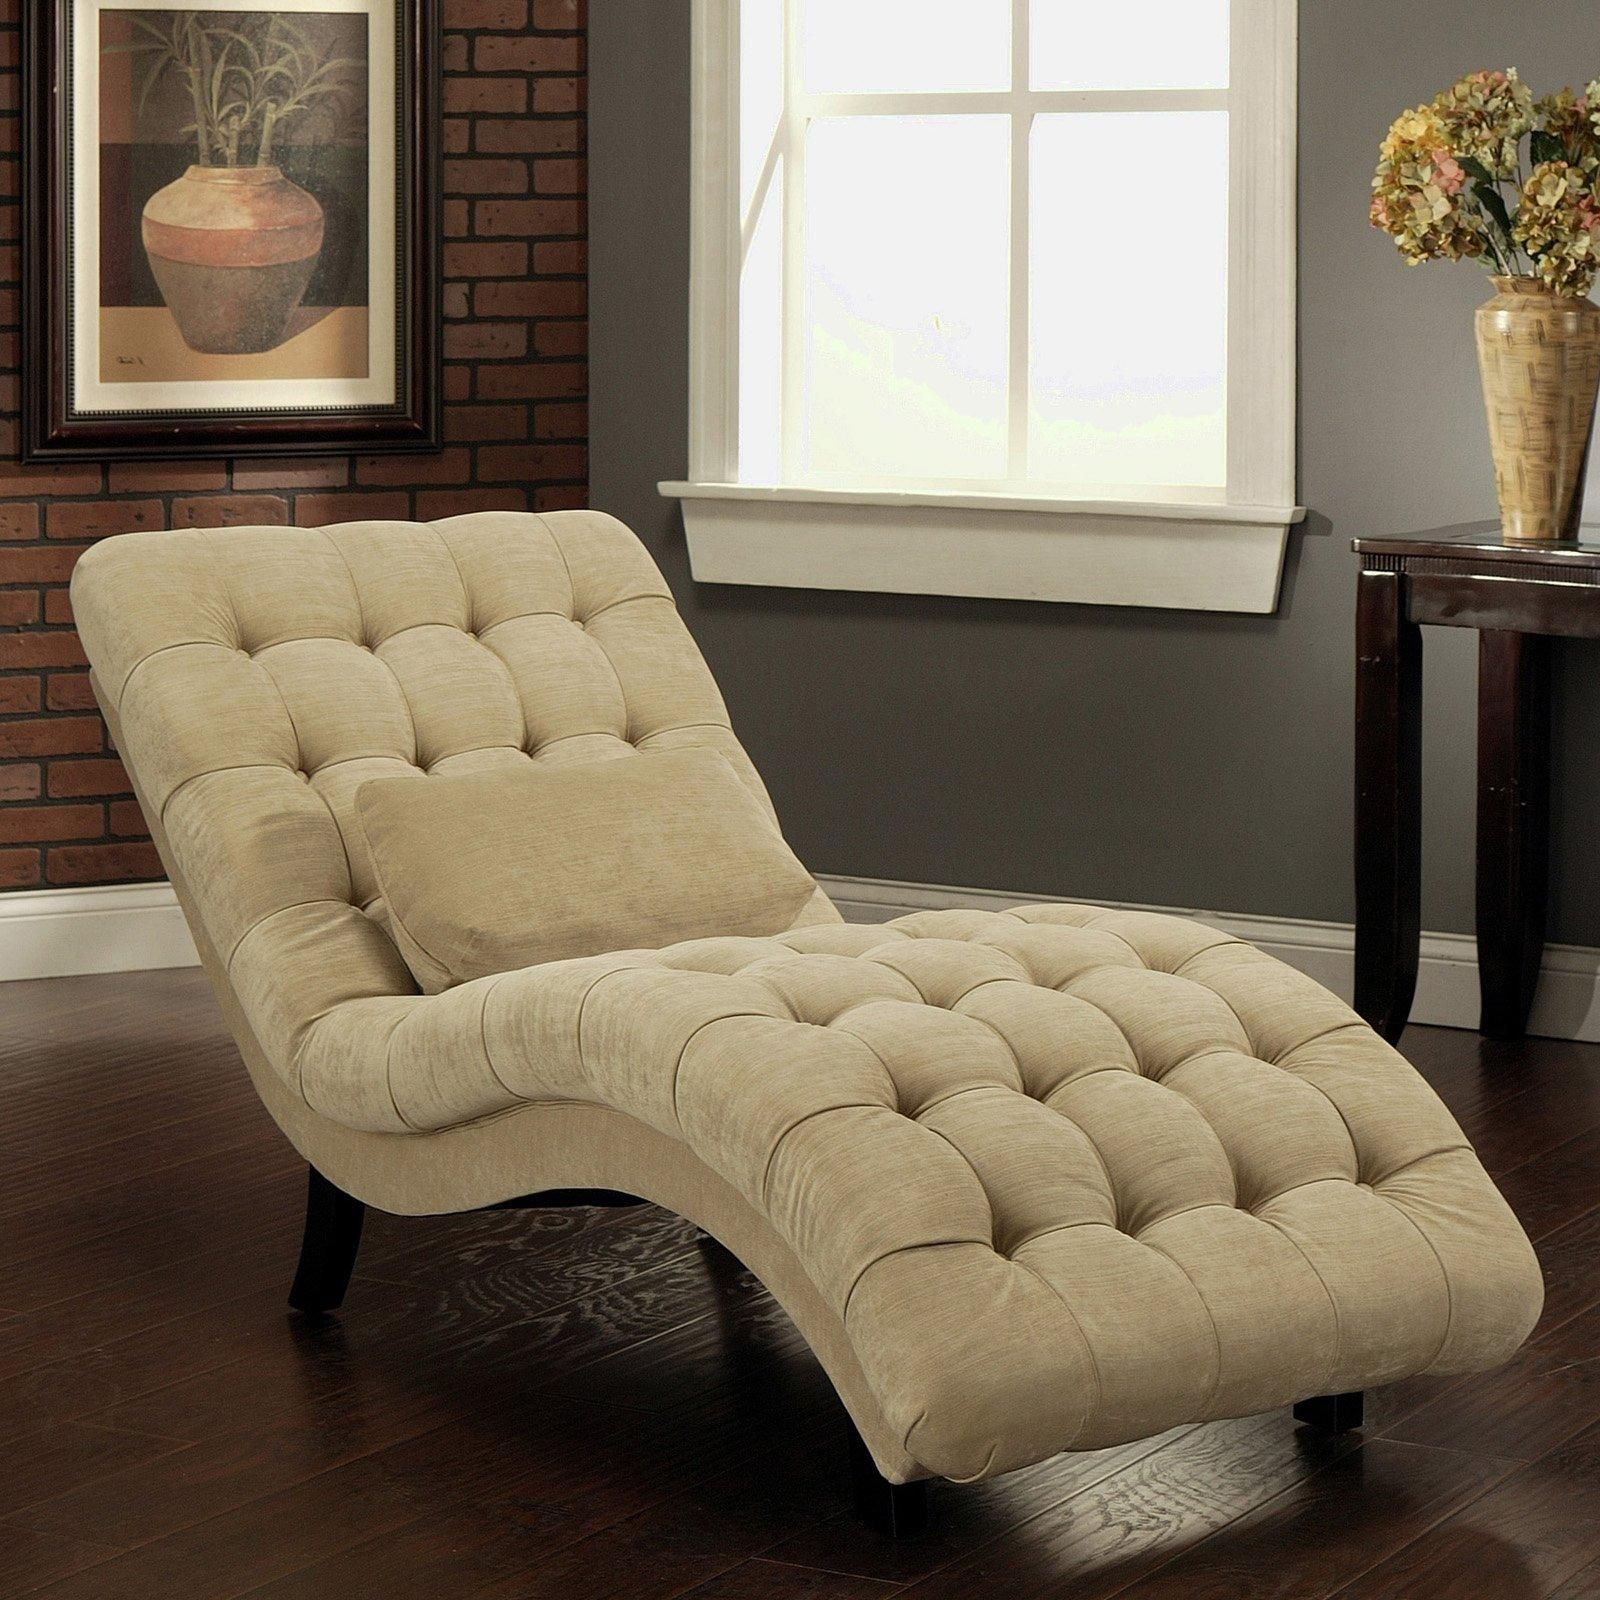 Thatcher Fabric Chaise Lounge Www Hayneedle Com Chaise Lounge